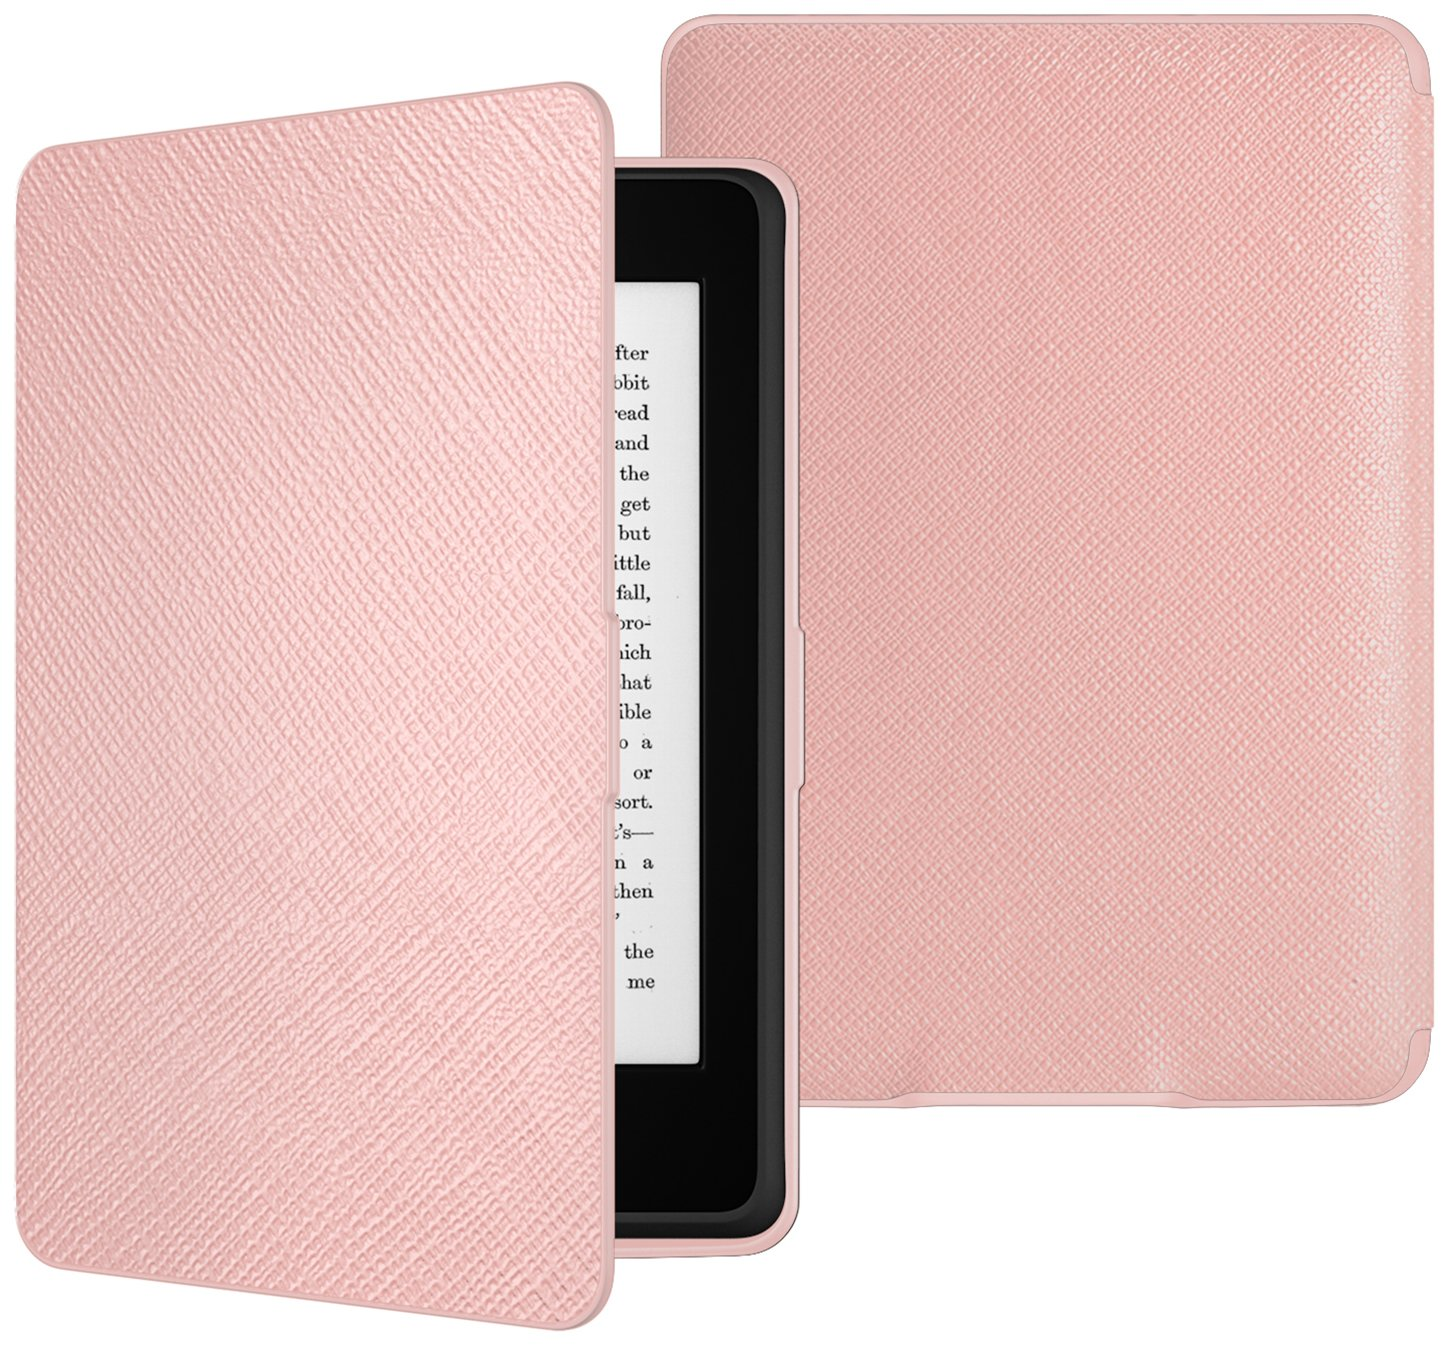 MoKo Case for Kindle Paperwhit